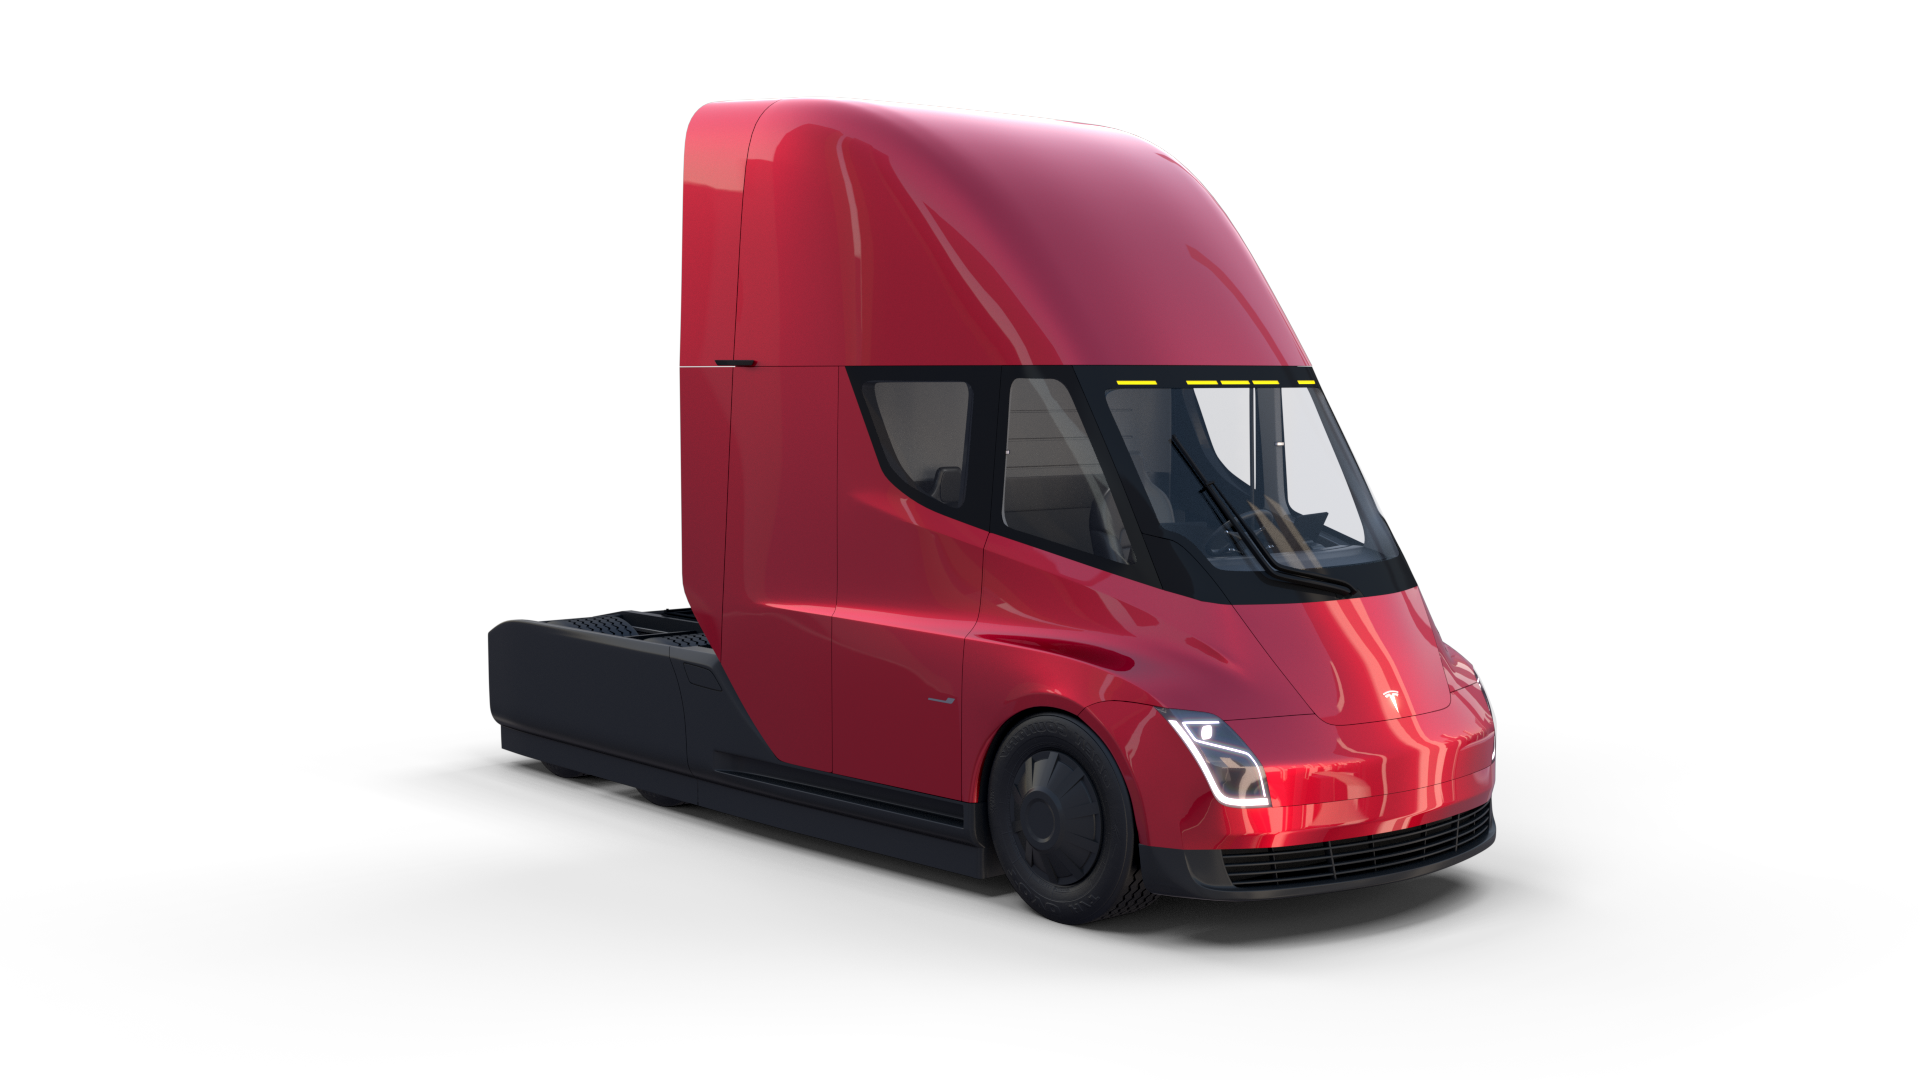 Tesla Semi Truck With Interior And Trailer Red Tesla Semi Truck Semi Trucks Tesla